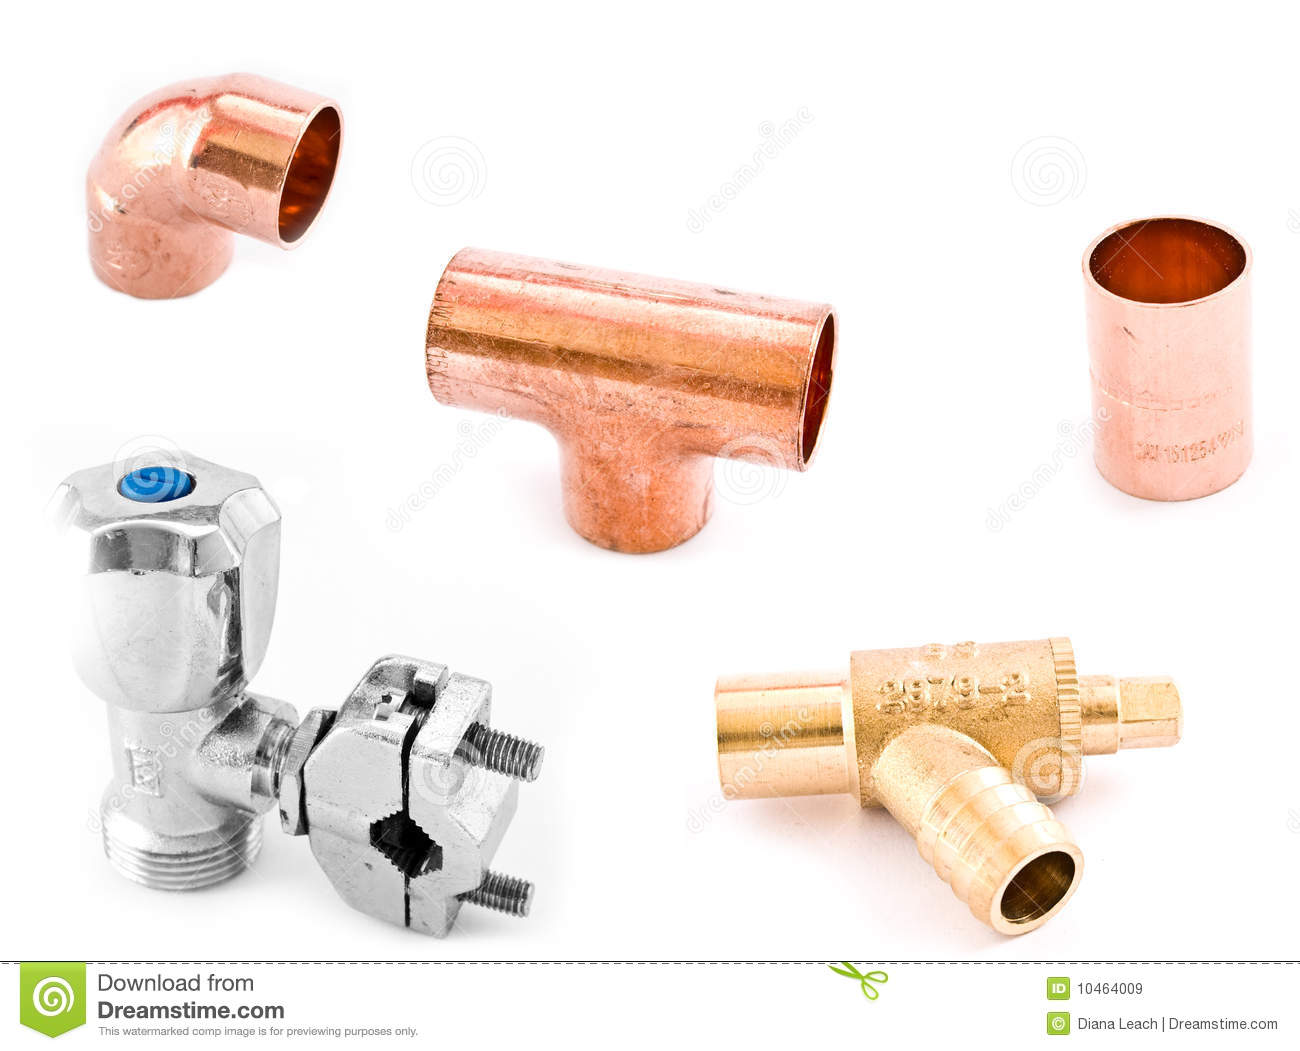 Asorted Plumbing Fittings Royalty Free Stock Images